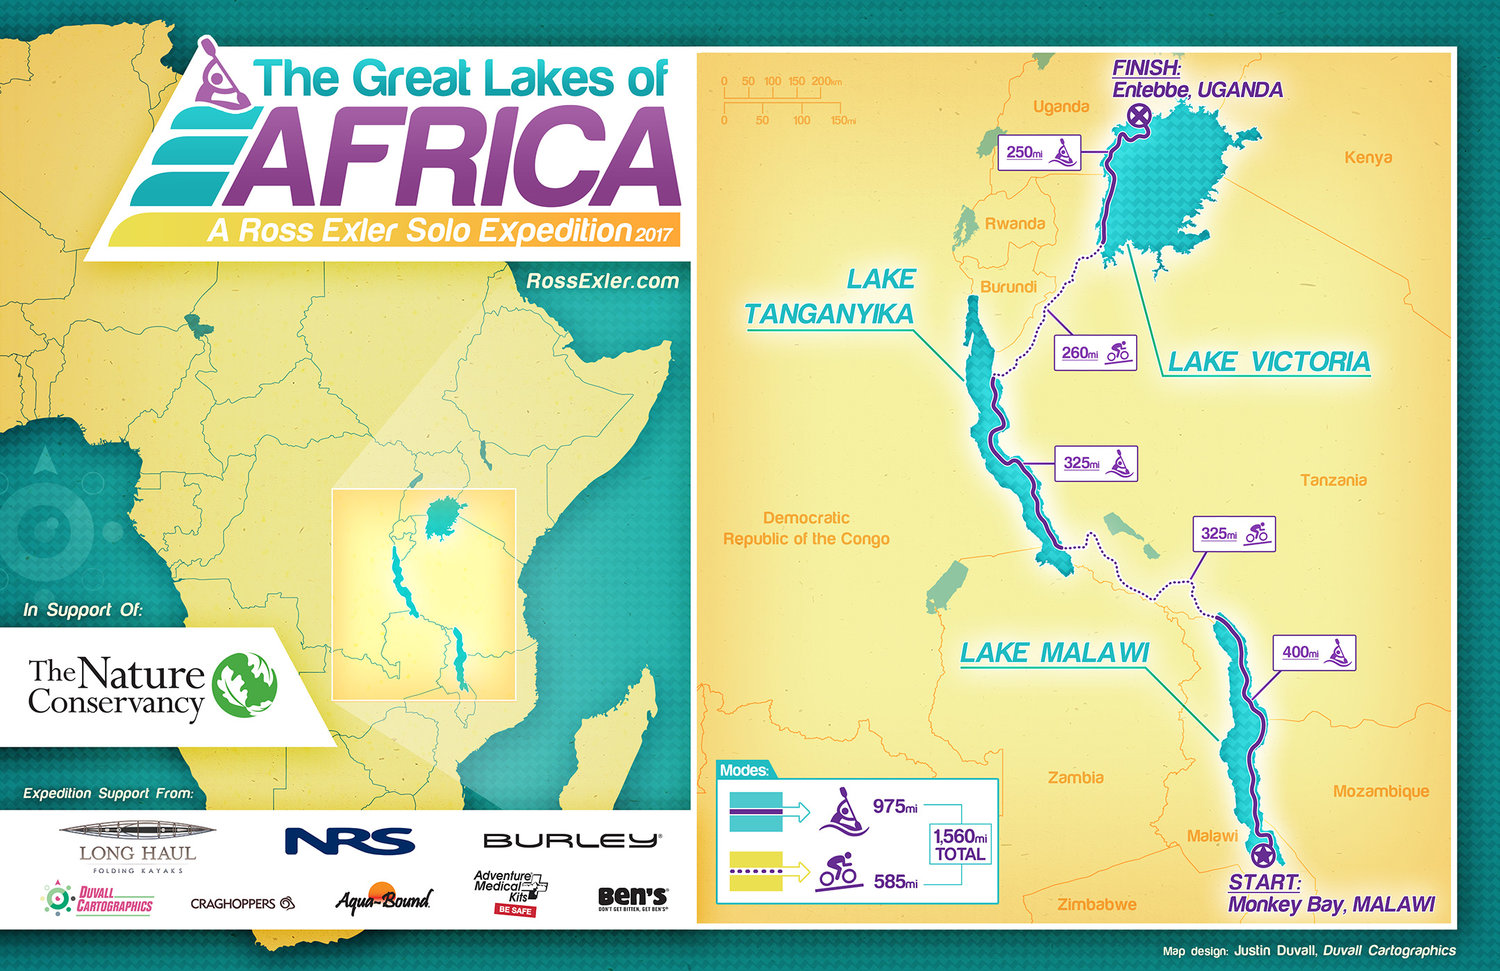 Lakes Of Africa Map.African Great Lakes Trip Ross Exler